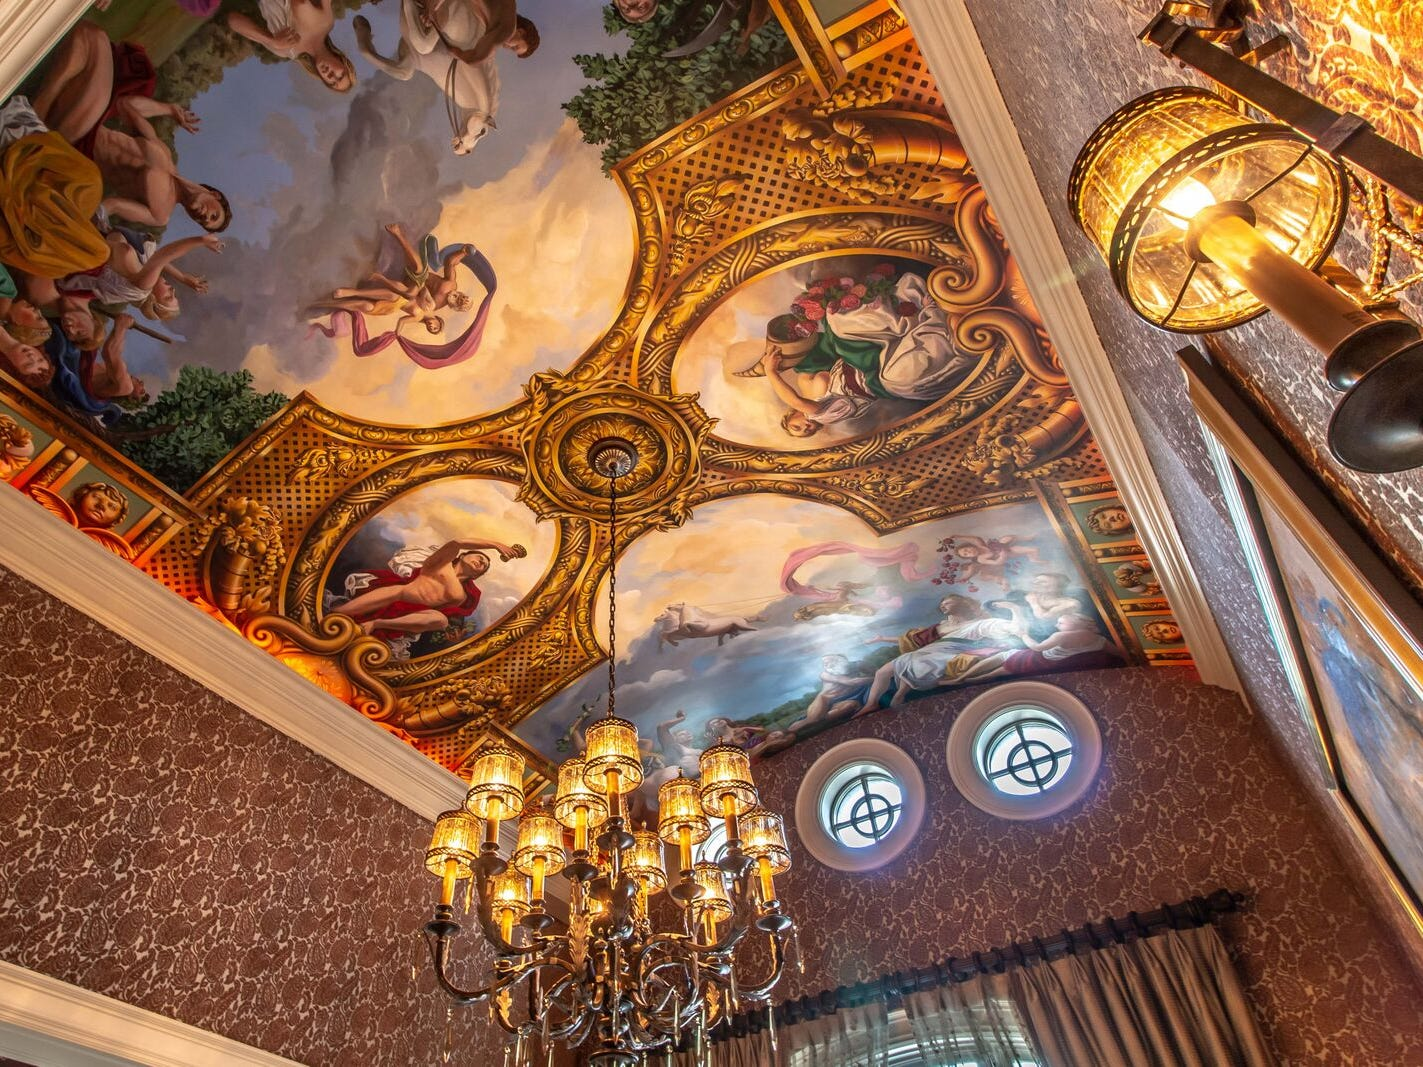 Painted ceilings in the dining room.